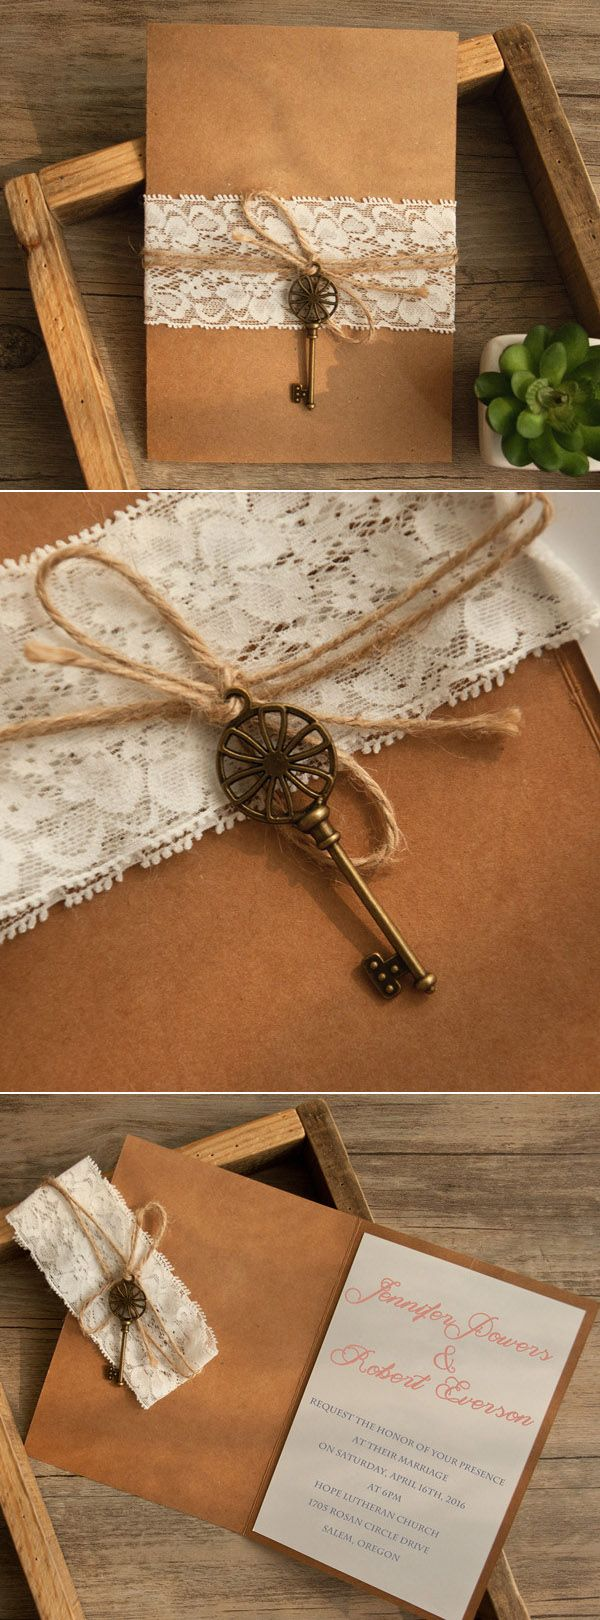 vintage lace and burlap wedding invitations for country rustic wedding ideas with a touch of peach color